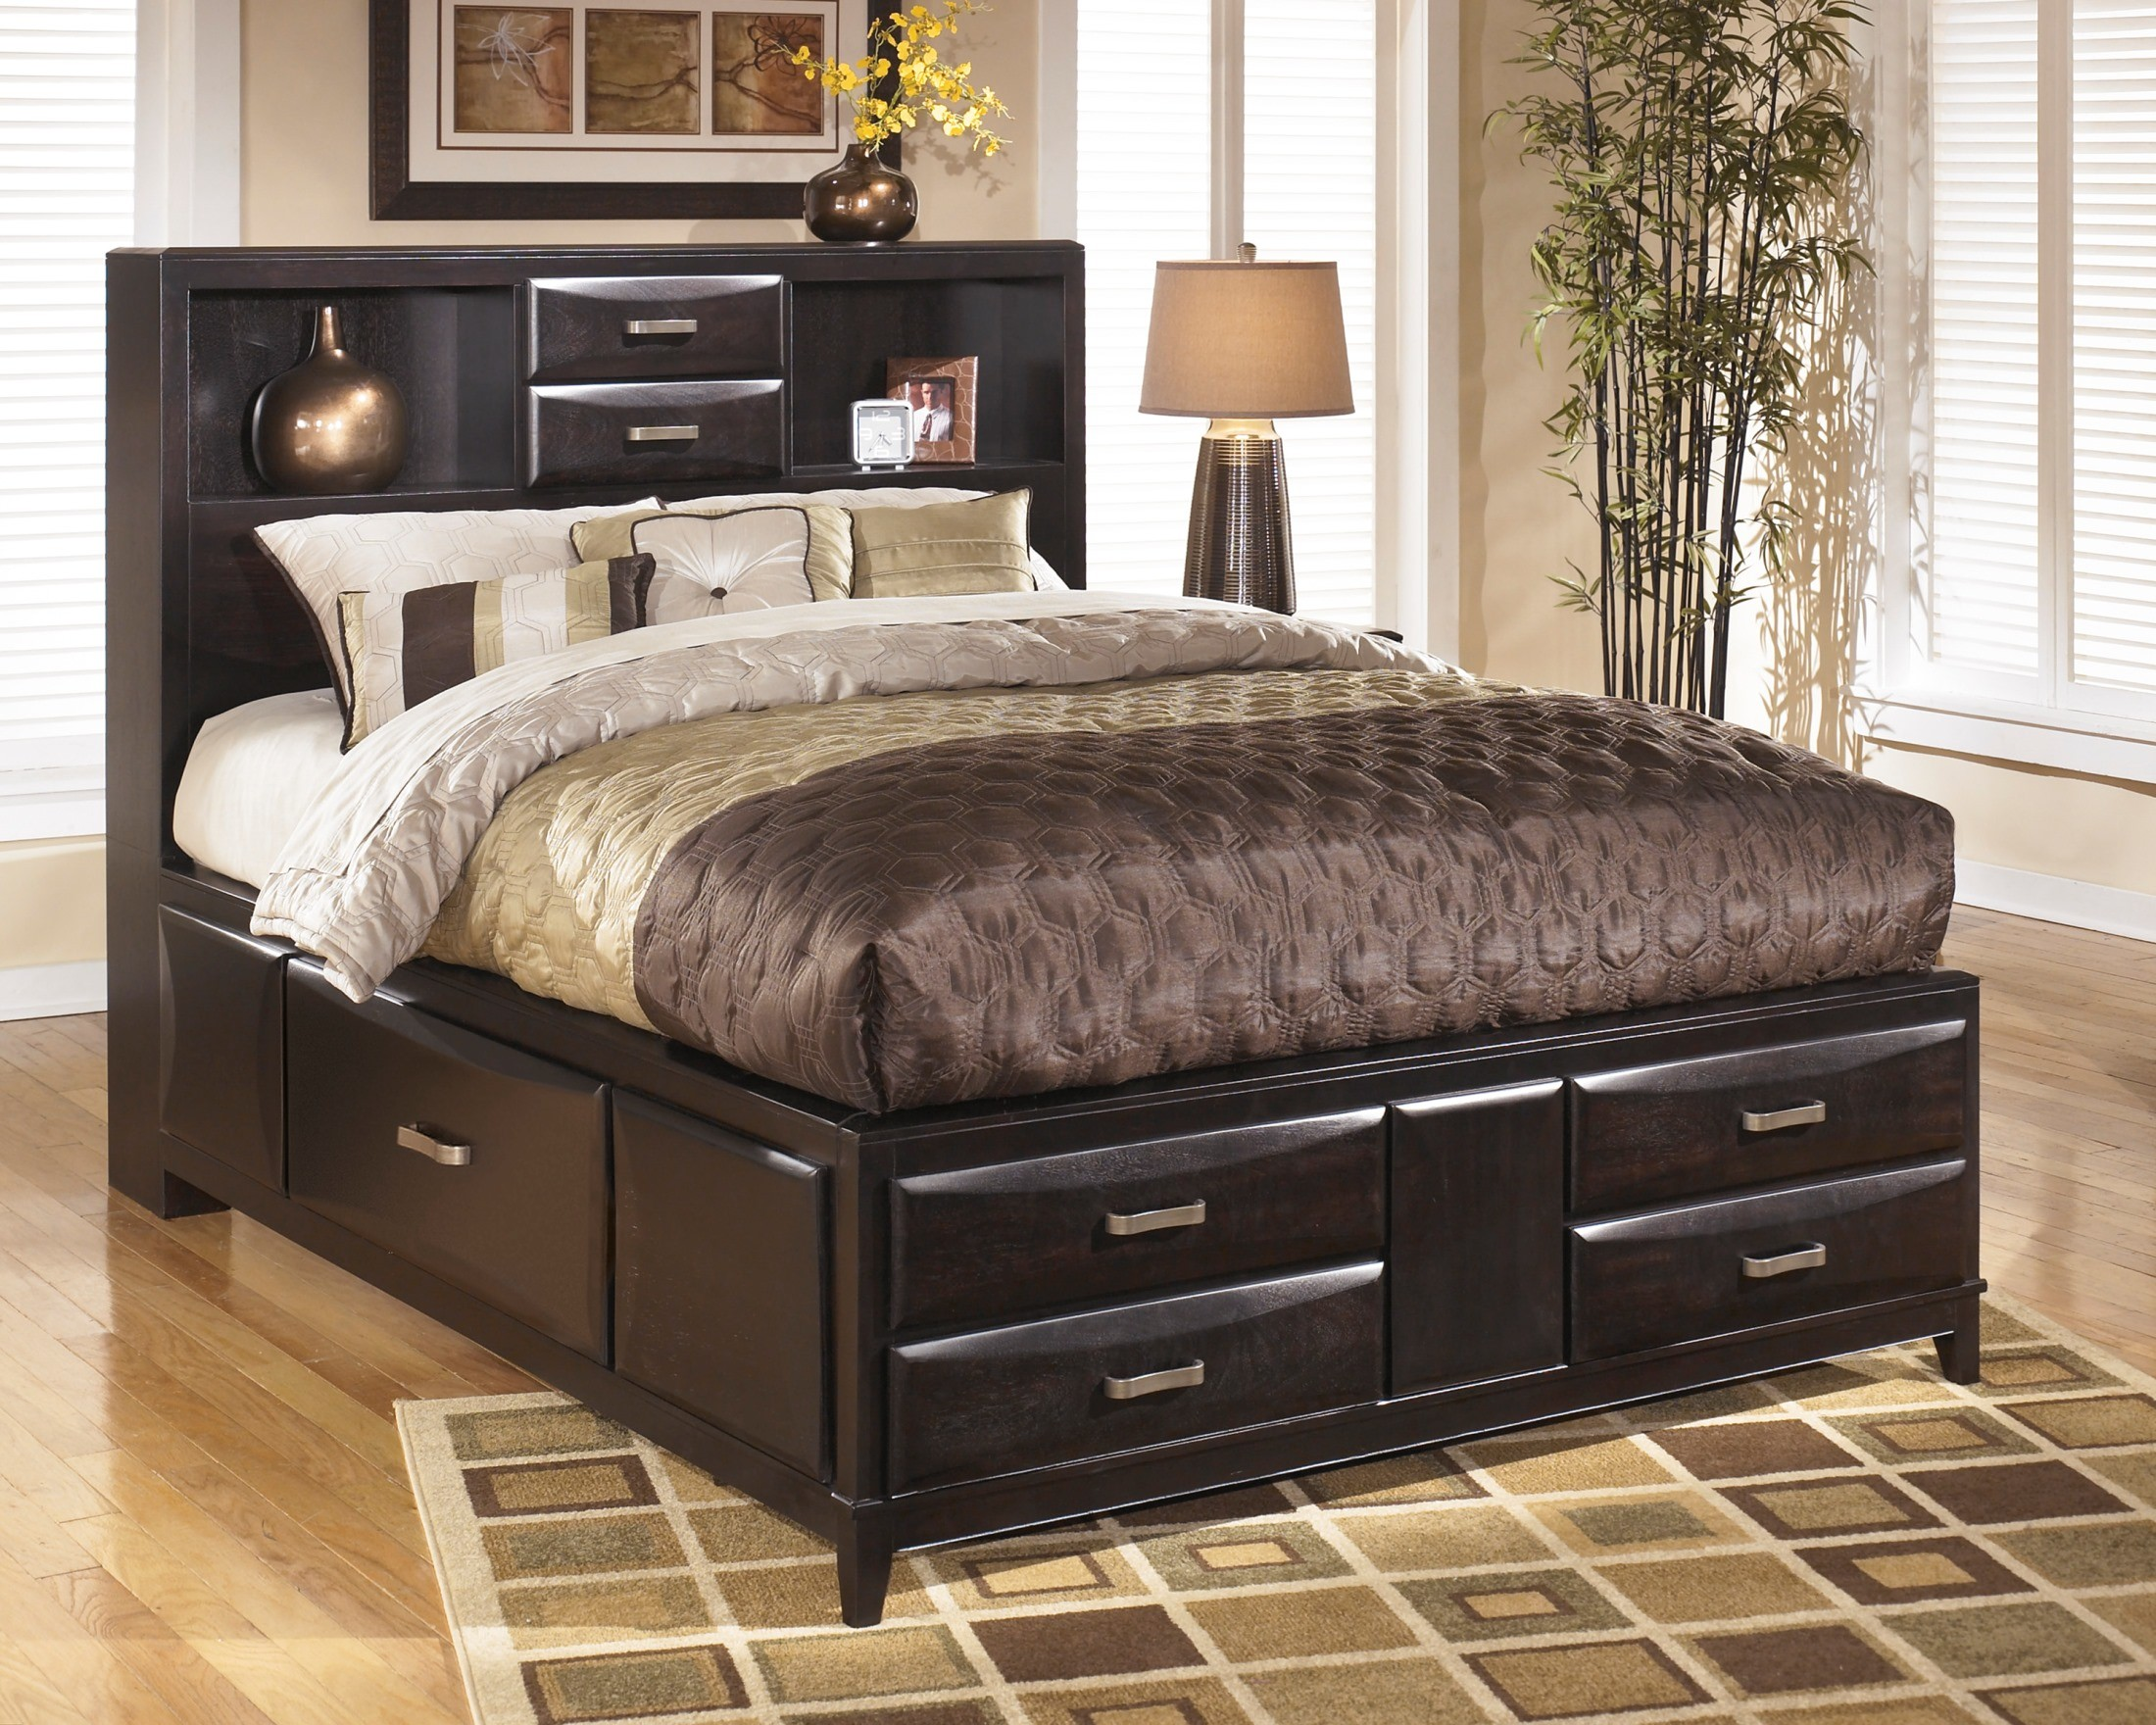 Kira cal king storage platform bed from ashley b473 66 69 - California king storage bedroom sets ...